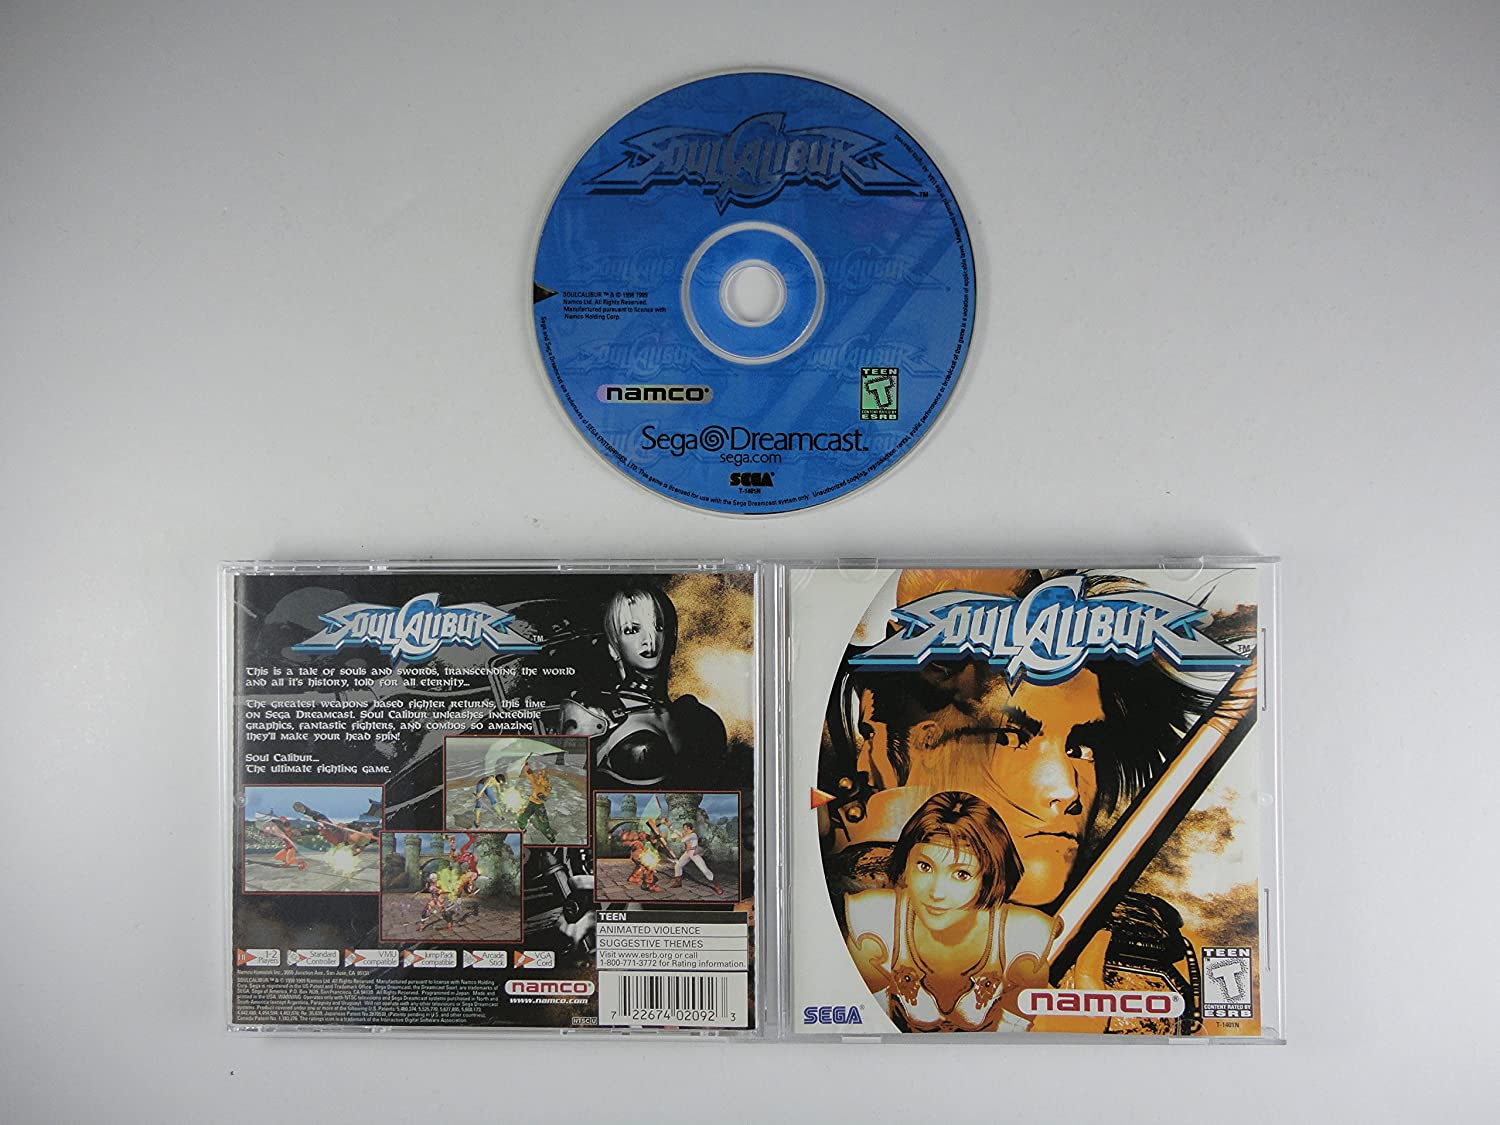 Soul Calibur Sega Dreamcast Video Games Cheats For Pc Playstation Ps2 Xbox N64 And Game Boy Apps